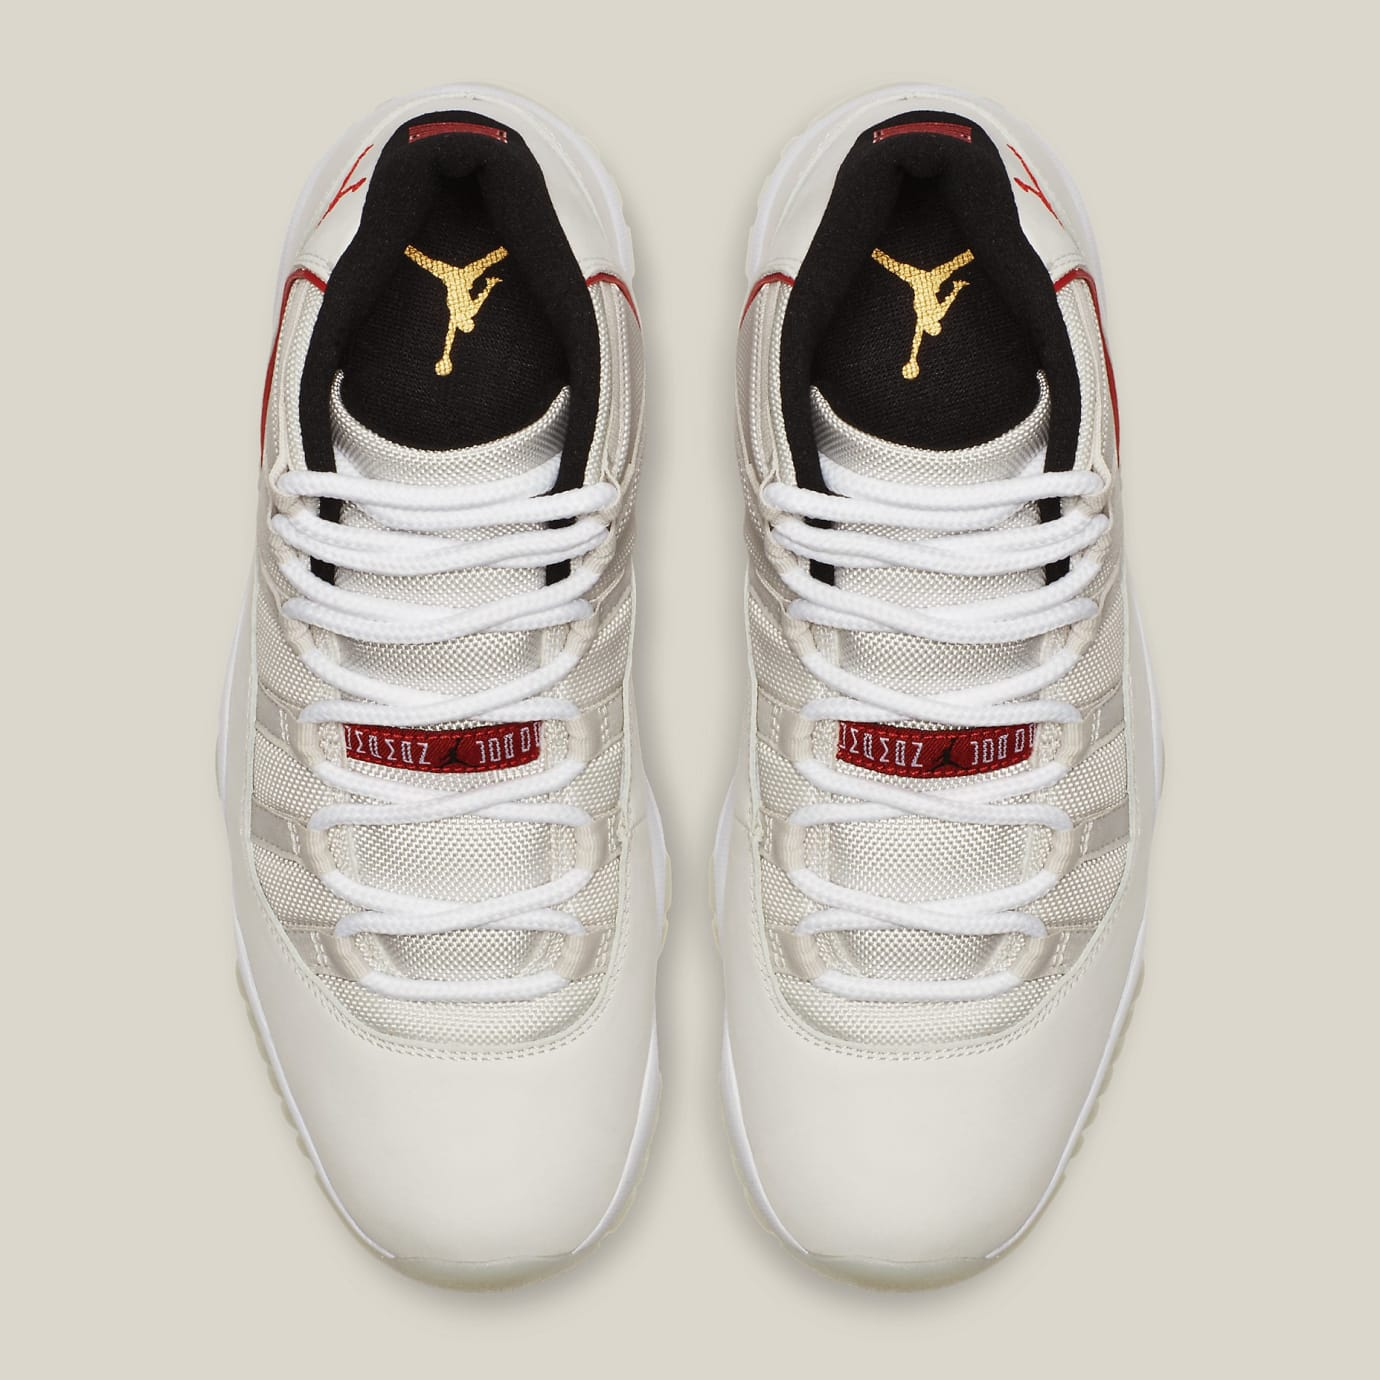 separation shoes 62484 49953 Image via Nike Air Jordan 11 XI Platinum Tint Release Date 378037-016 Top